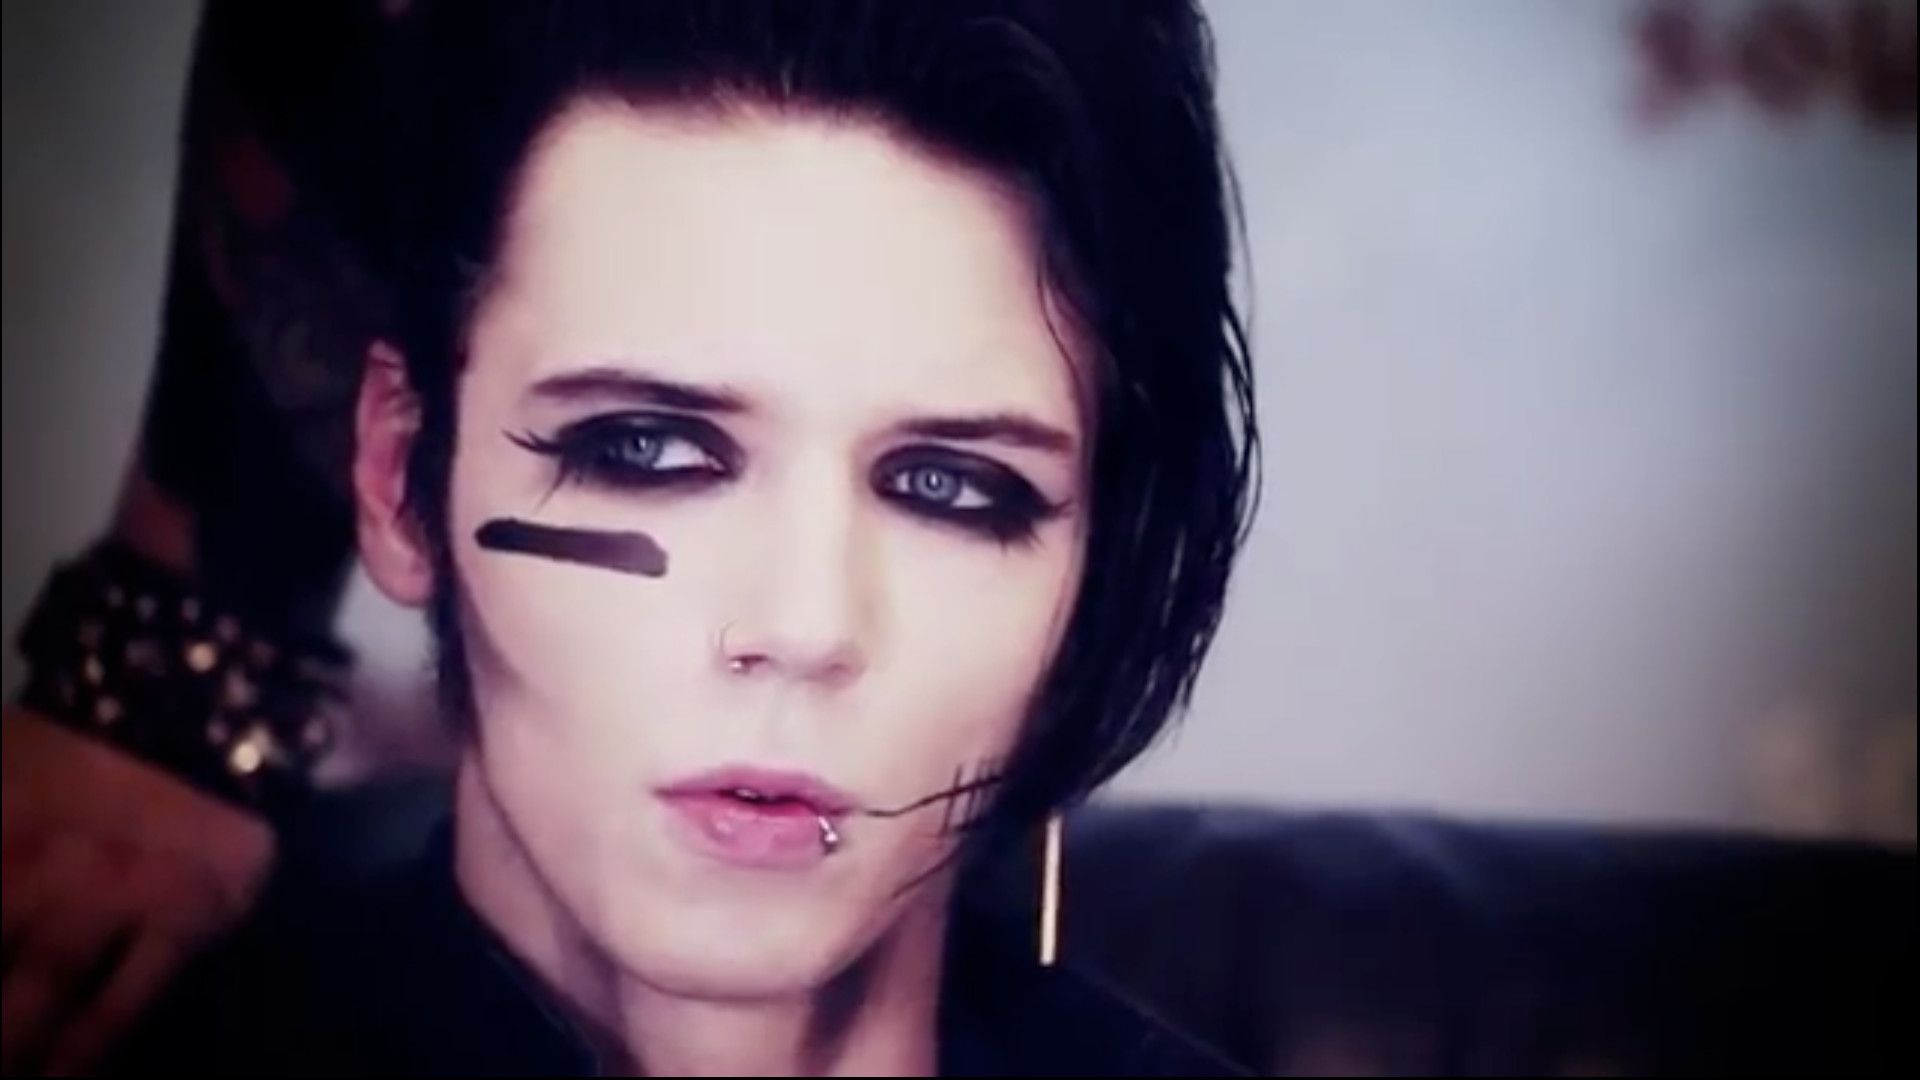 1920x1080 Andy Biersack Full Makeup - Mugeek Vidalondon. Â«